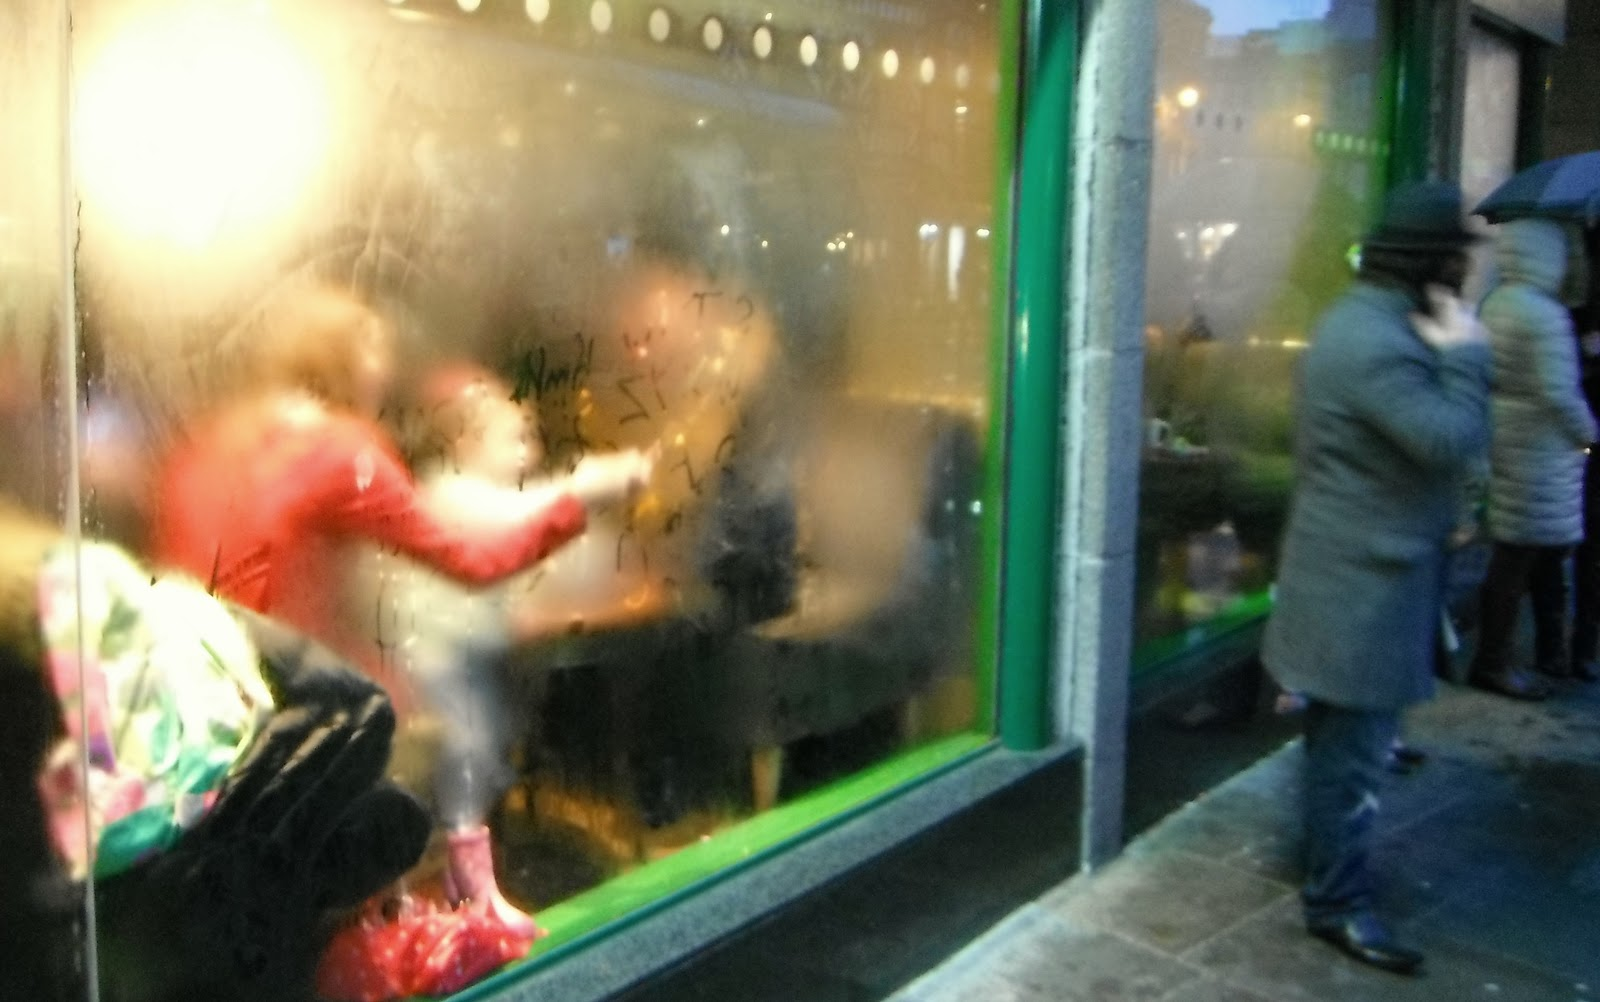 A mother and child draw shapes in the condensation on a window.